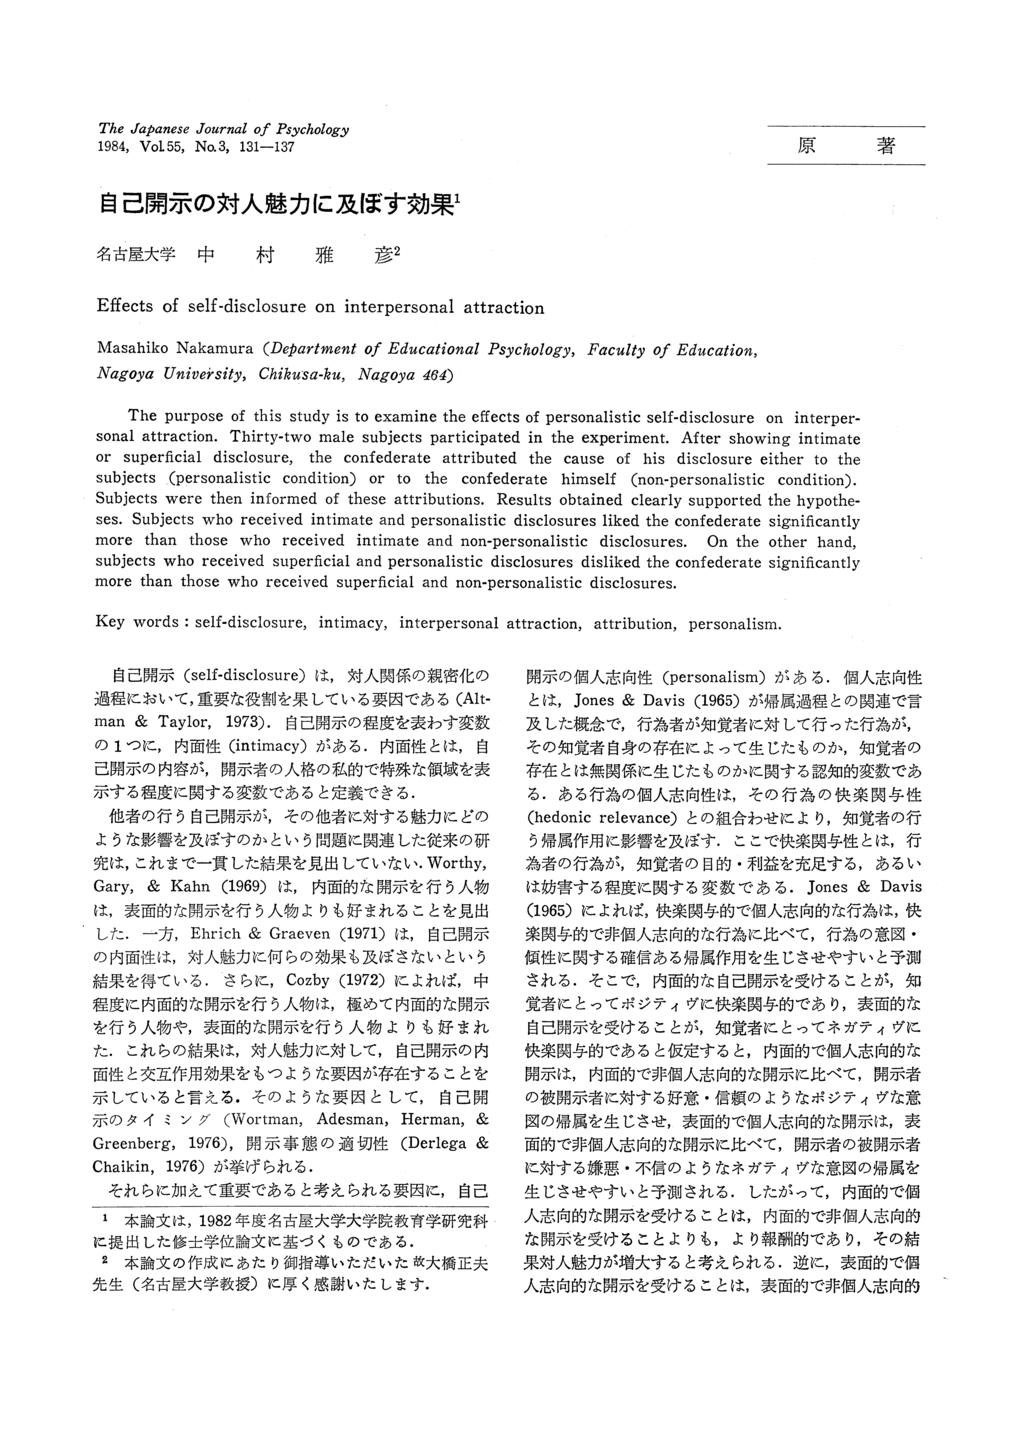 The Japanese Journal of Psychology 1984, Vol. 55, No.